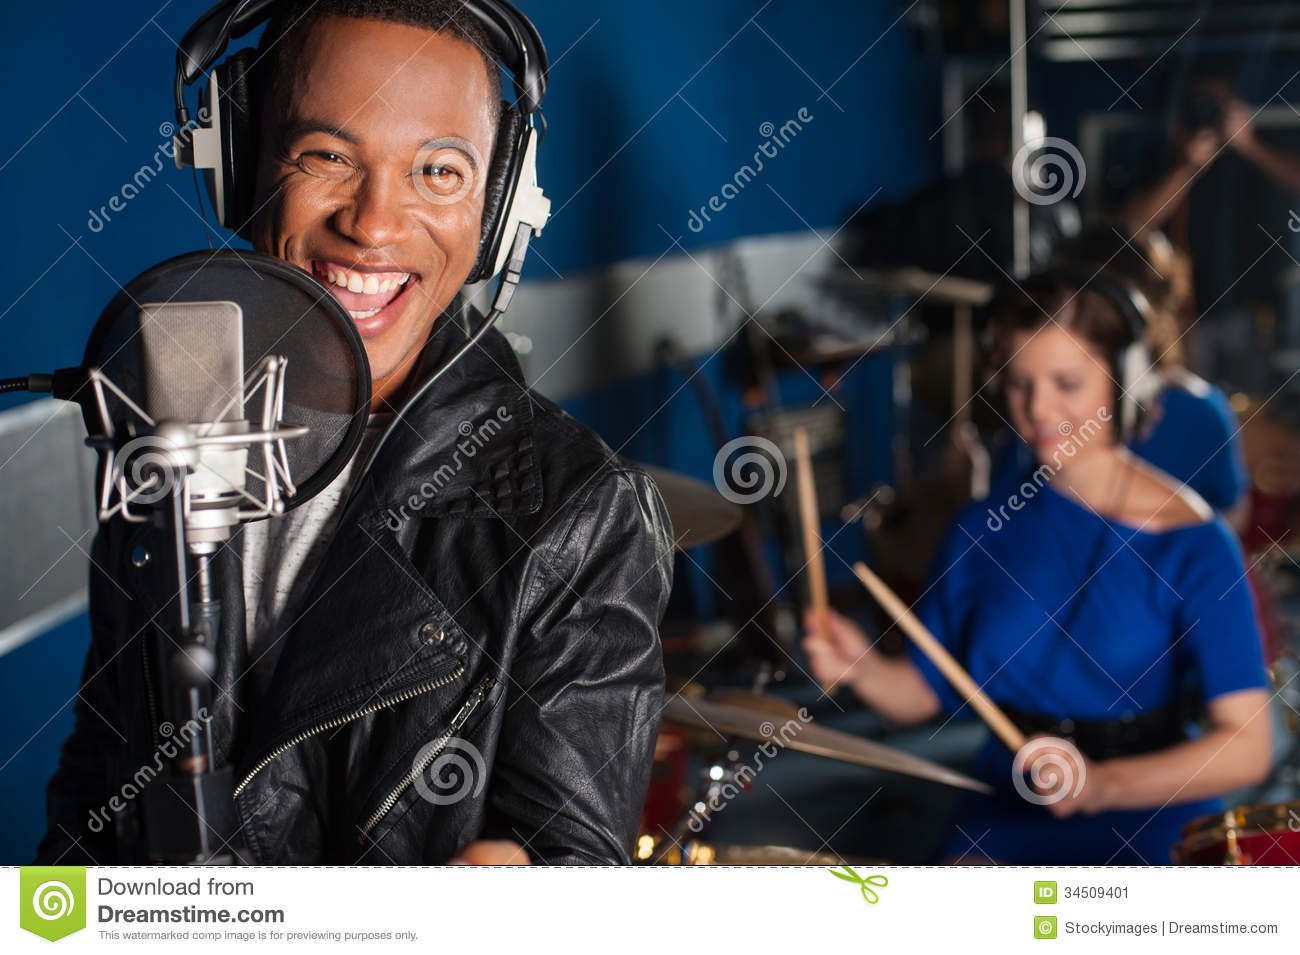 Singer Recording A Song In Studio Stock Image - Image of equipment